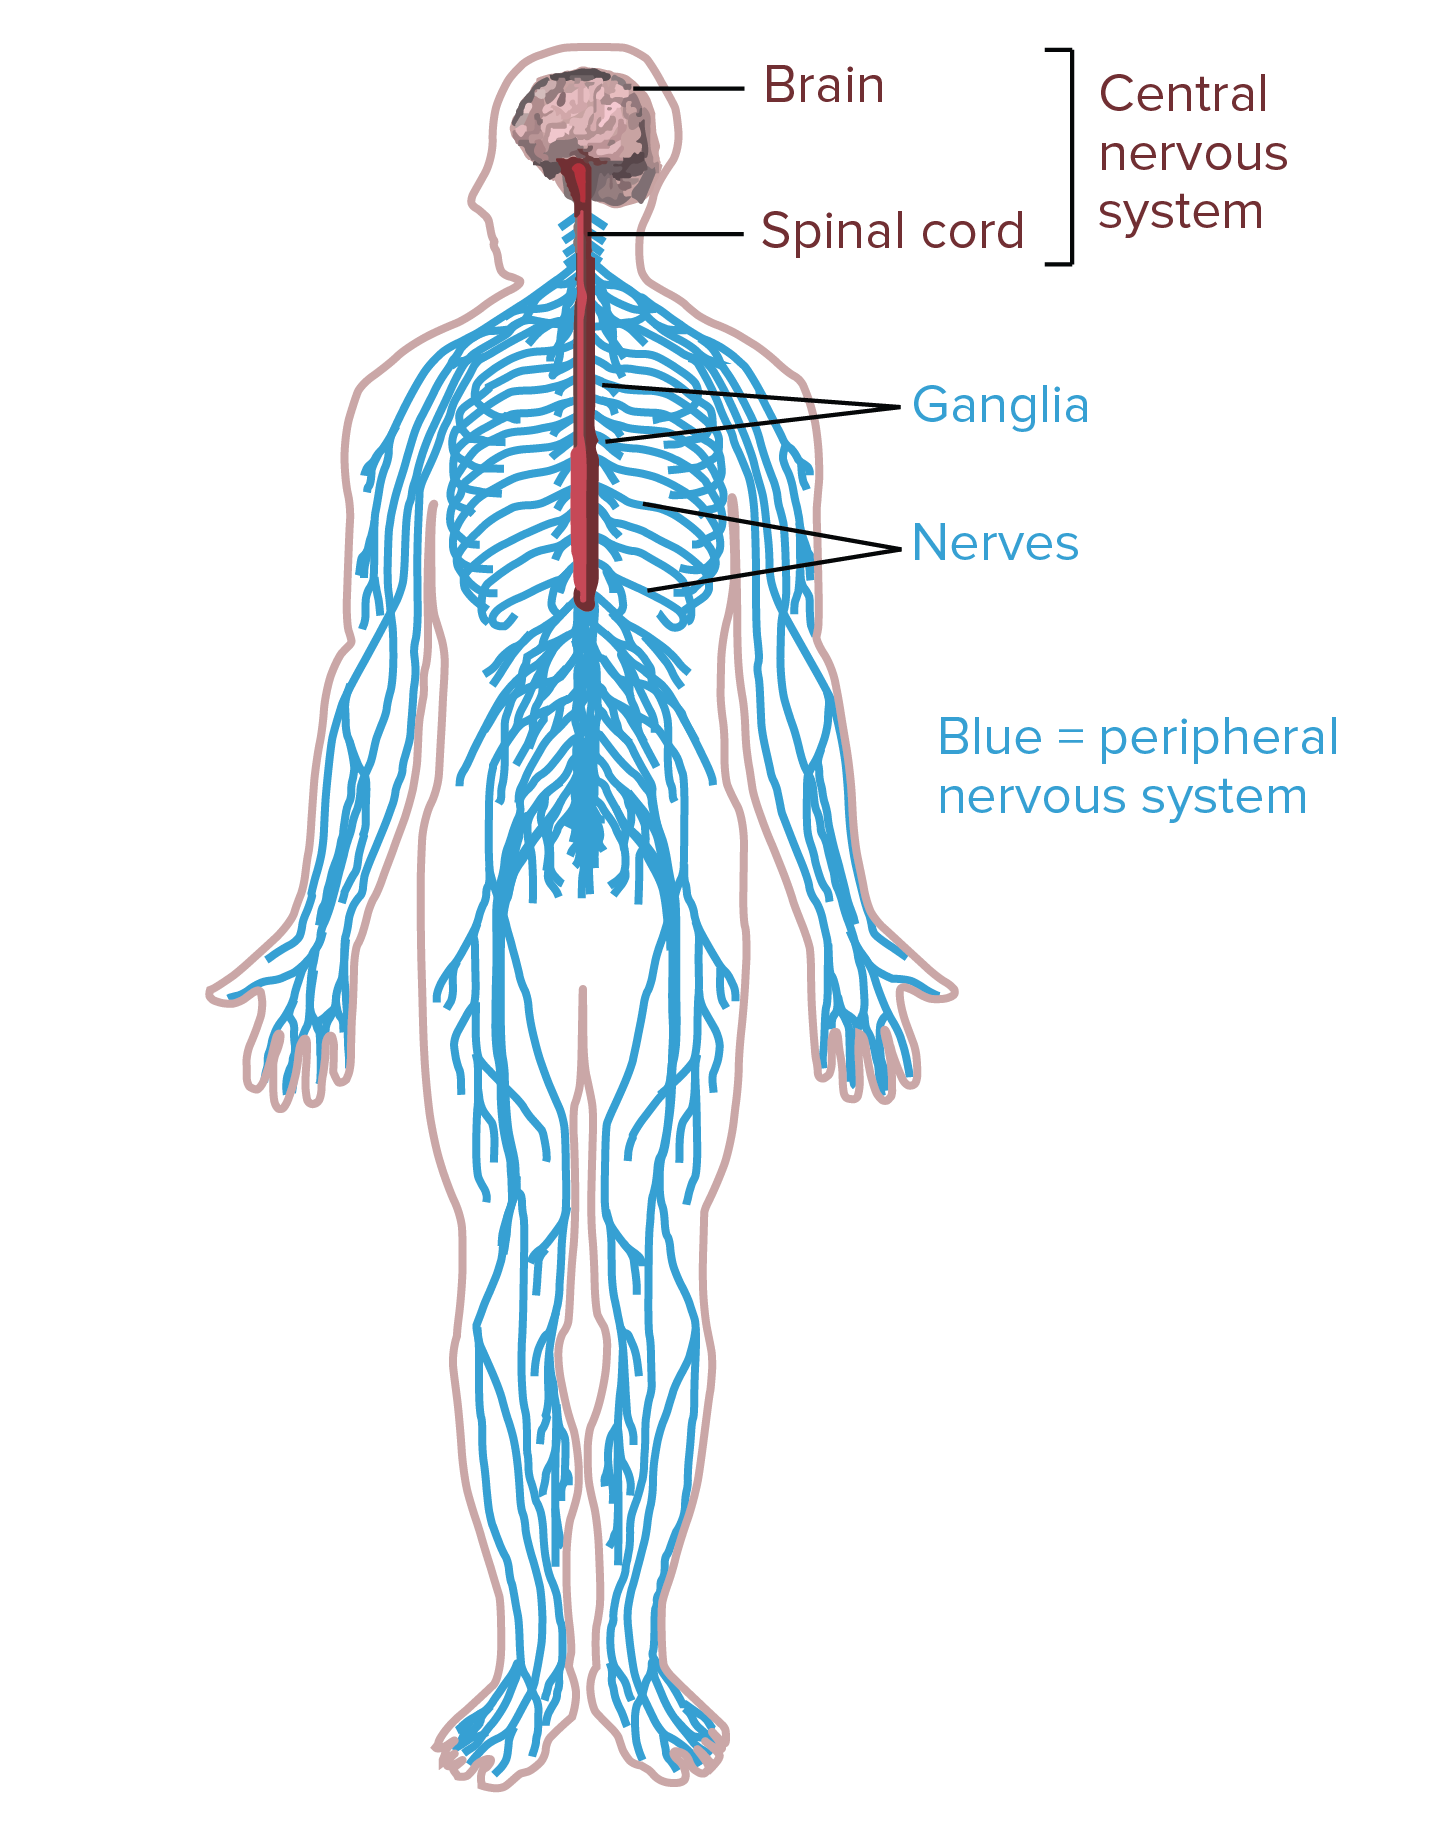 Clipart brain central nervous system. Drawing at getdrawings com